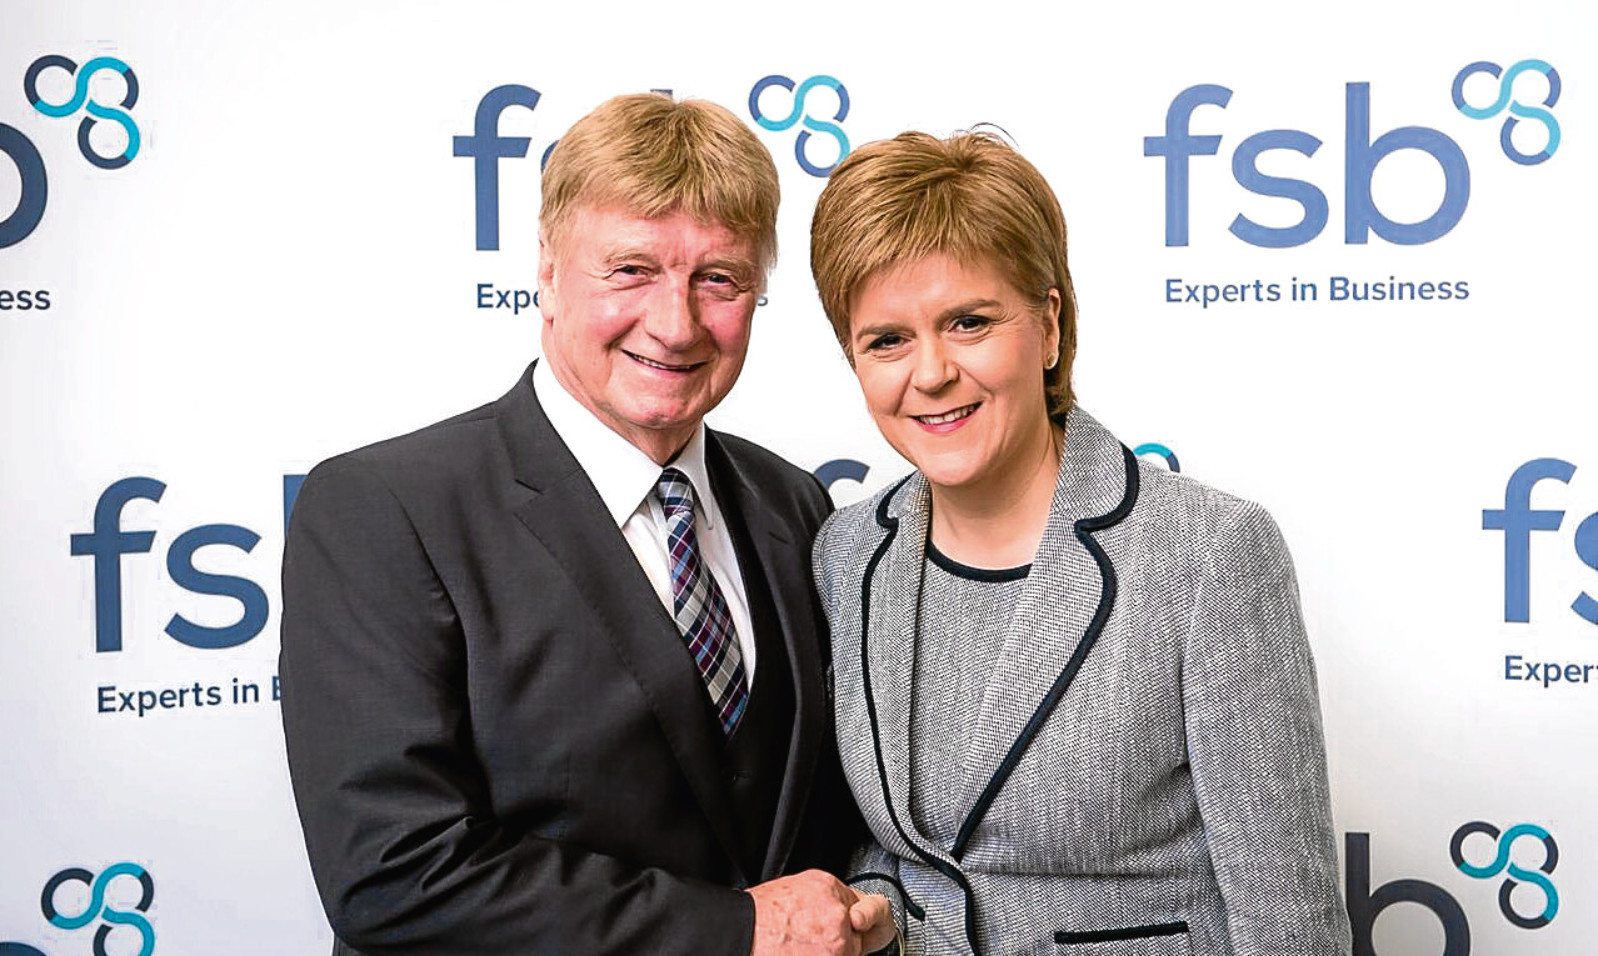 Andy Willox of FSB Scotland with First Minister Nicola Sturgeon last year. The Scottish Government will receive a copy of the FSB's new report